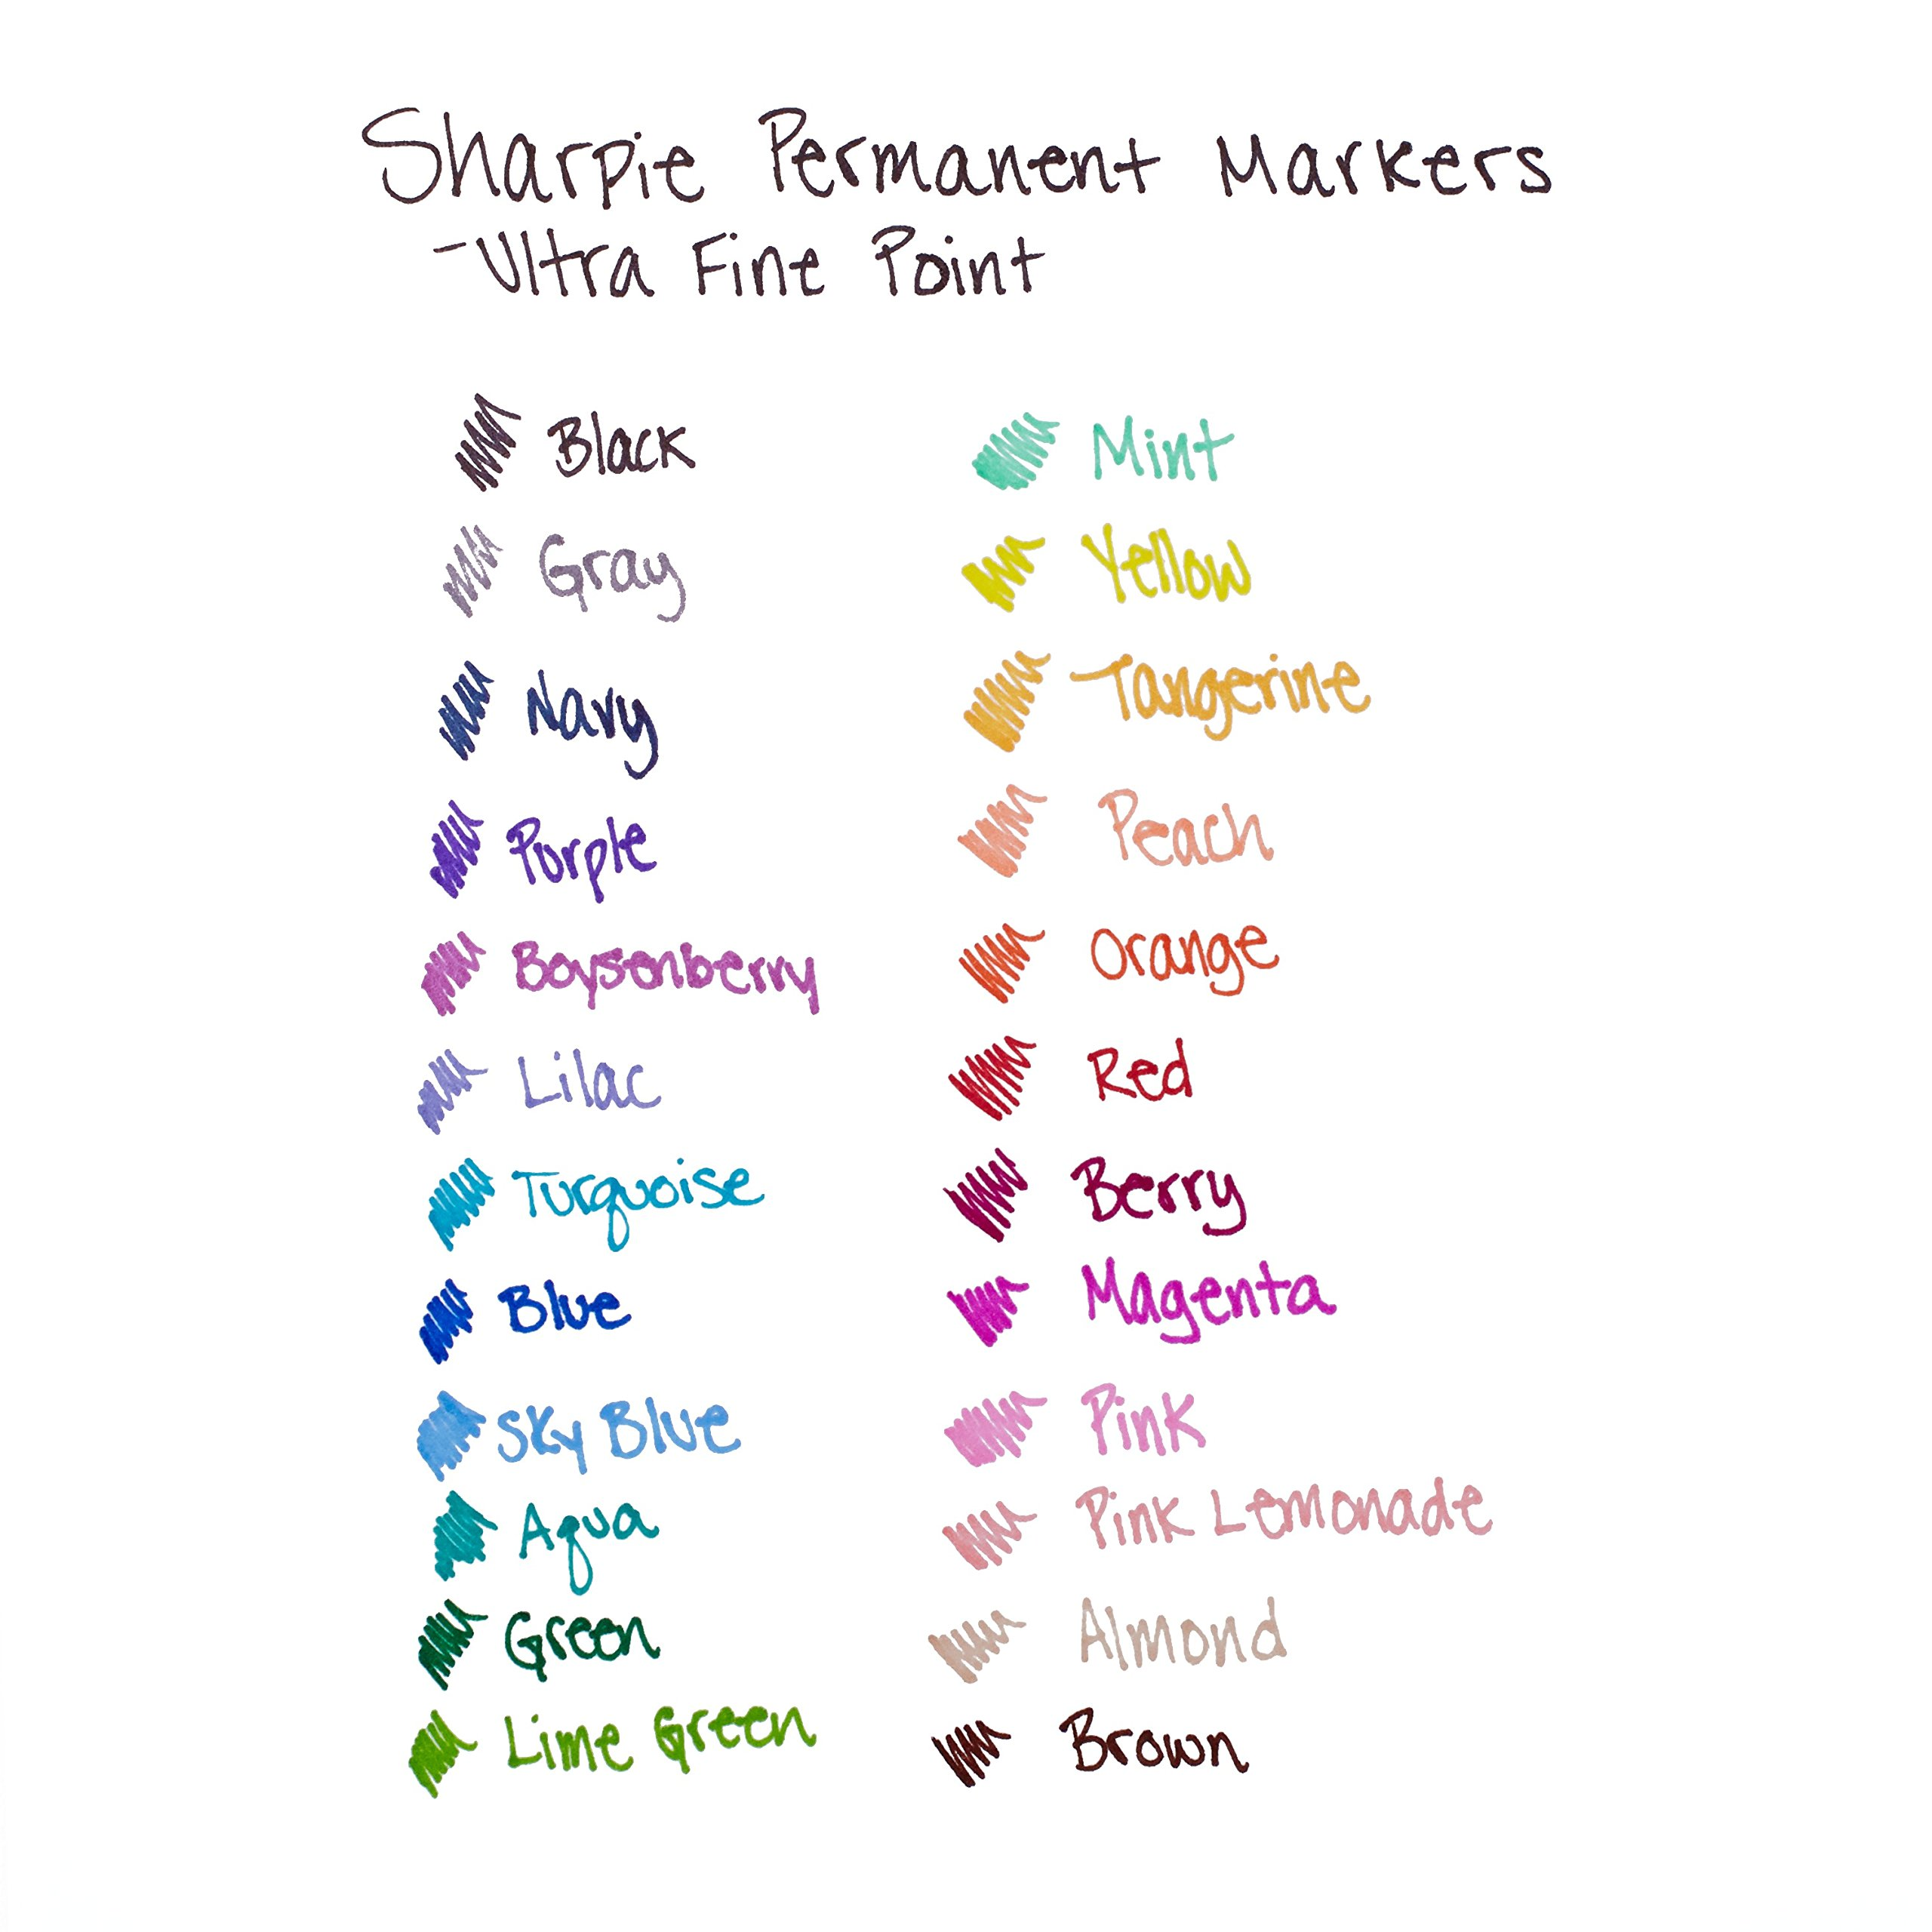 Sharpie 75847 Permanent Markers, Ultra Fine Point, Assorted Colors, 24-Count by Sharpie (Image #4)